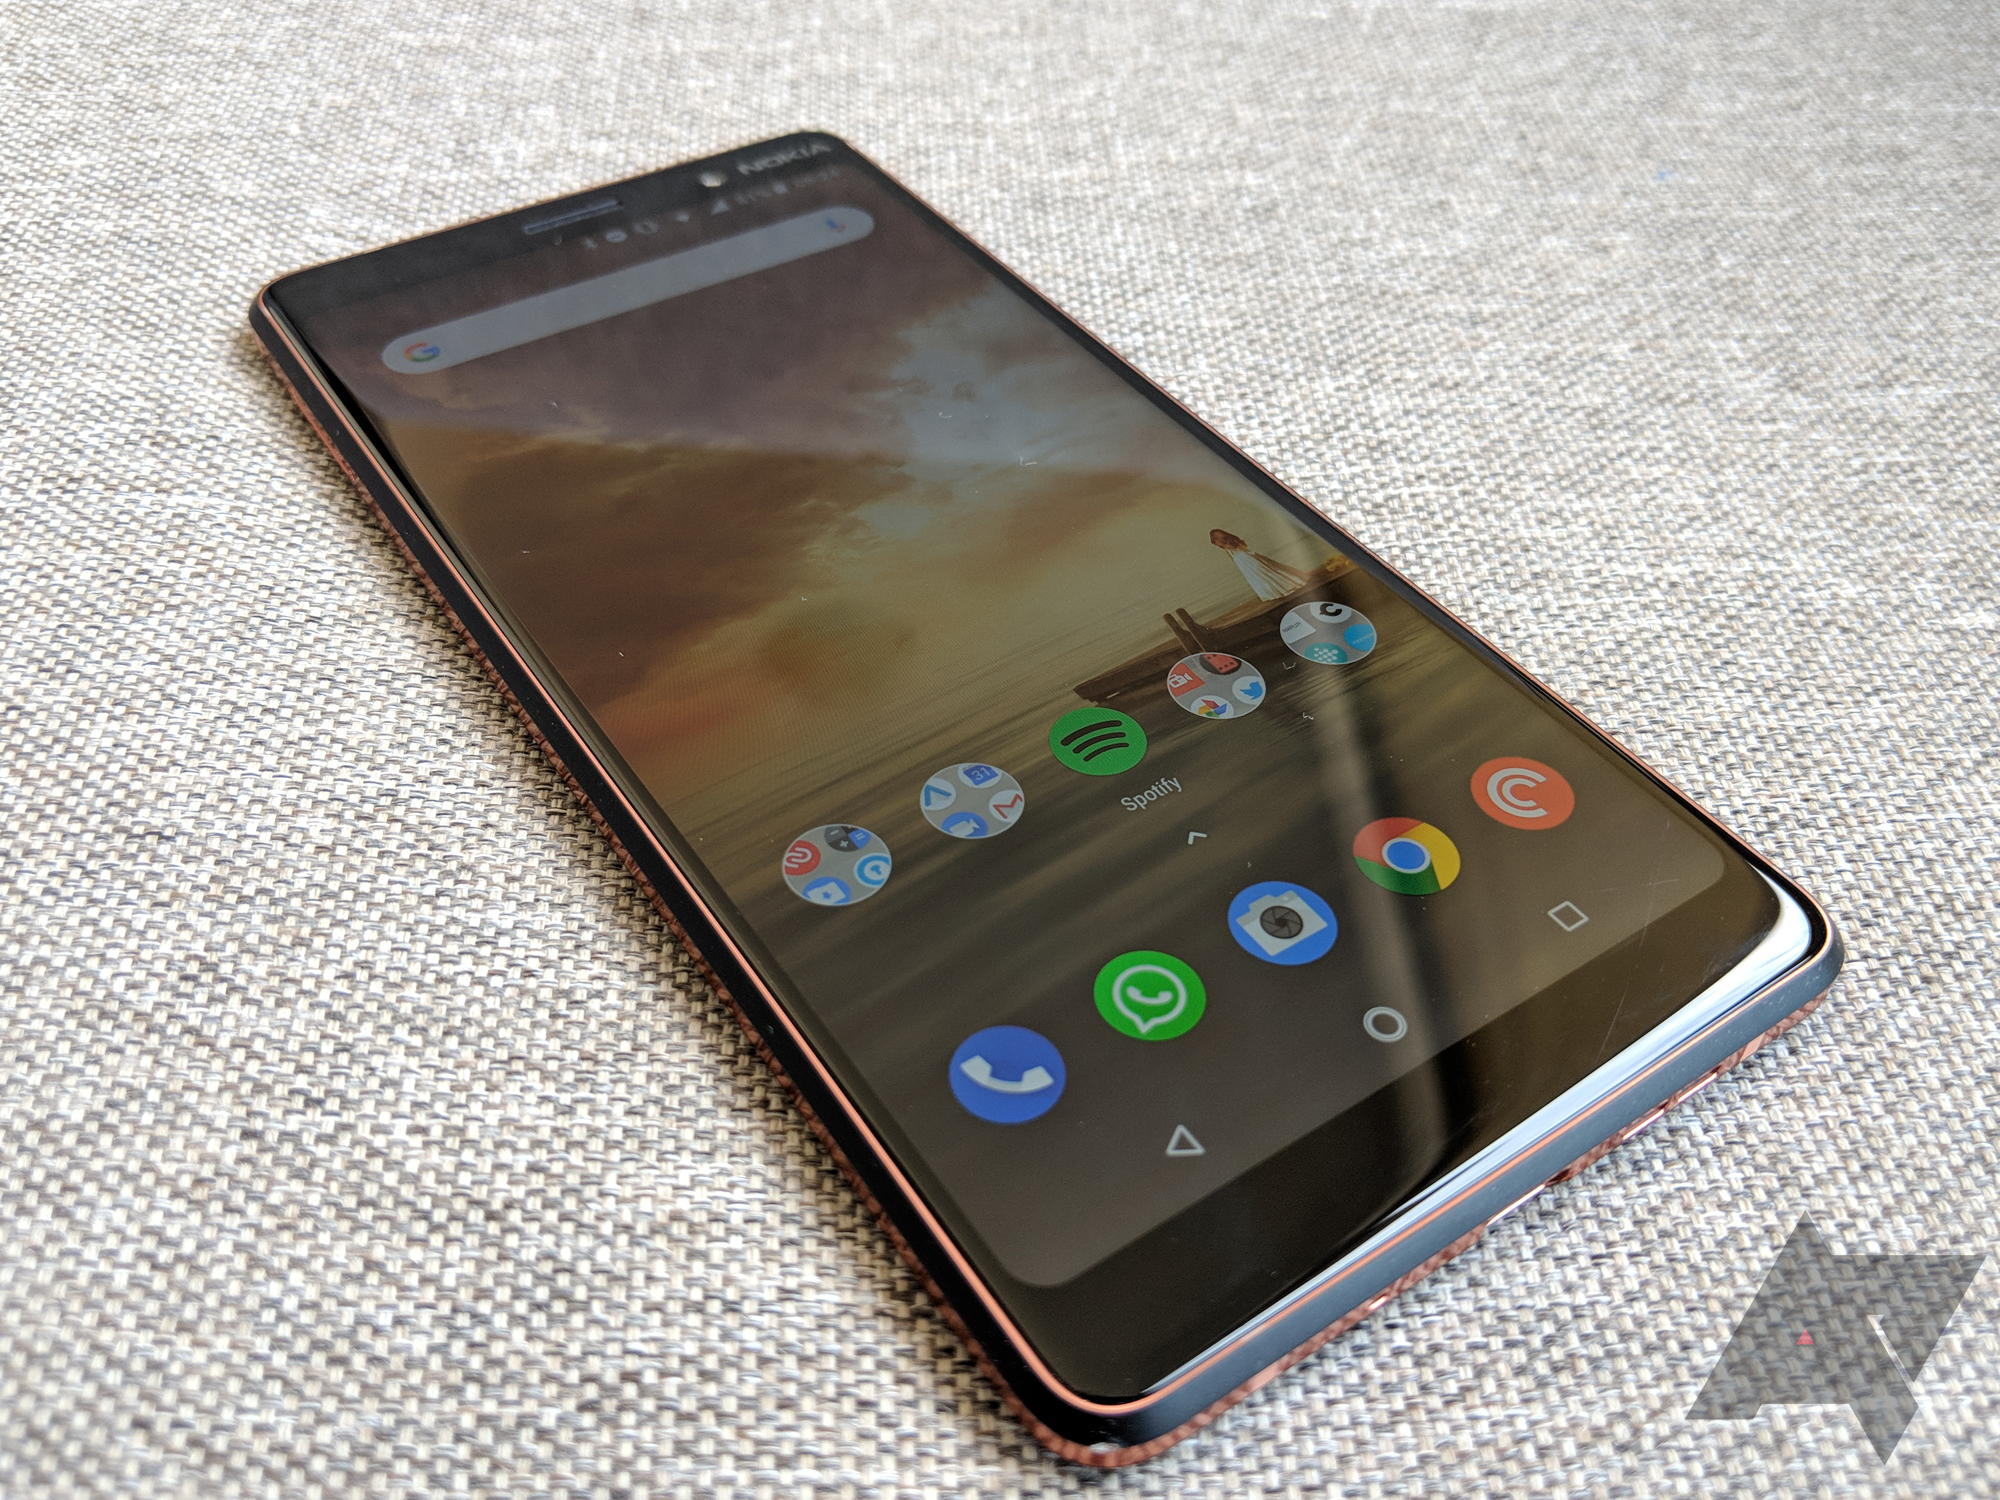 Android 9 Pie Beta 4 is out now for the Nokia 7 Plus